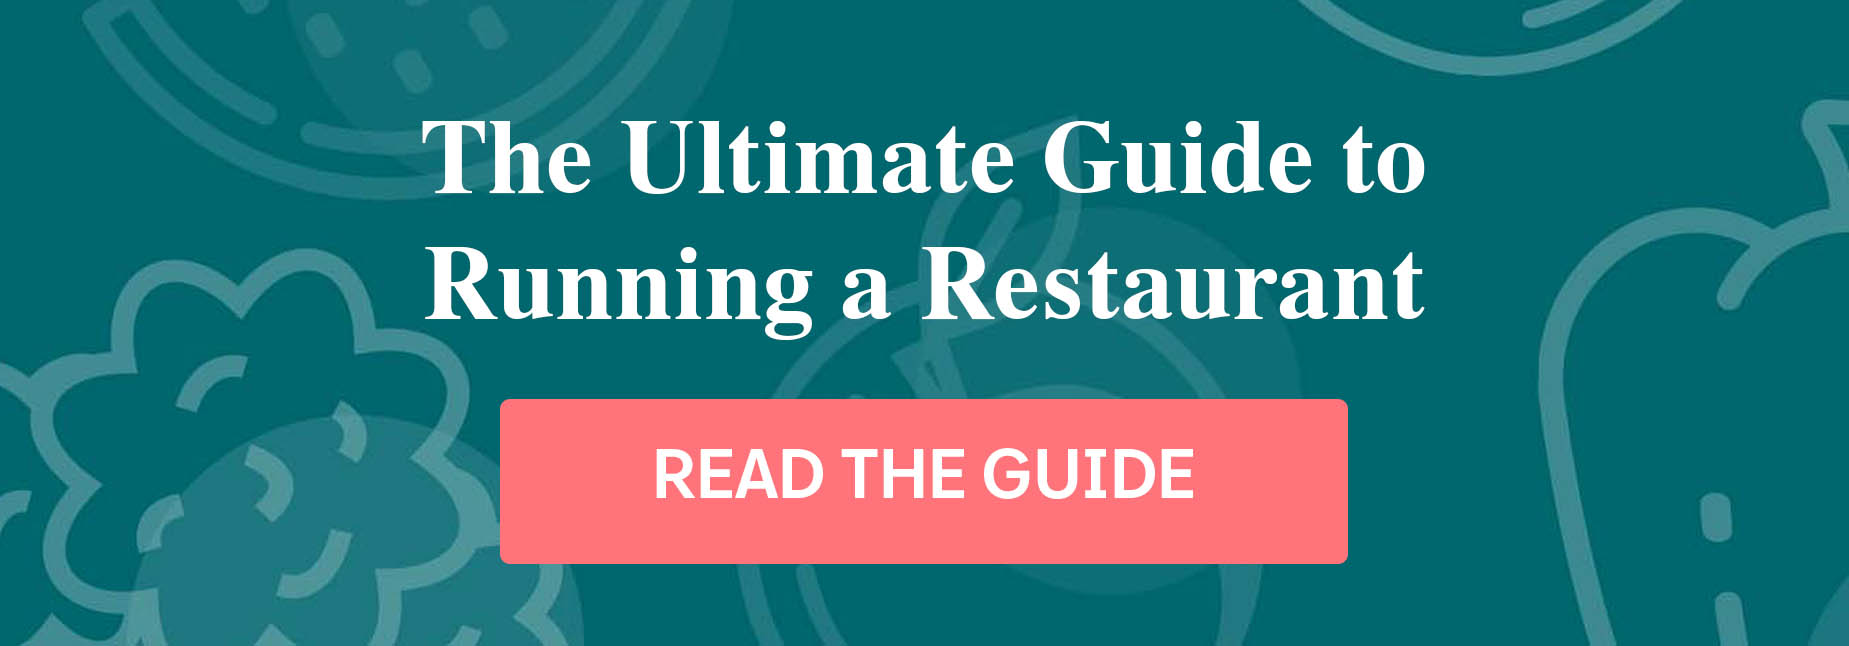 The ultimate guide to running a restaurant button view guide